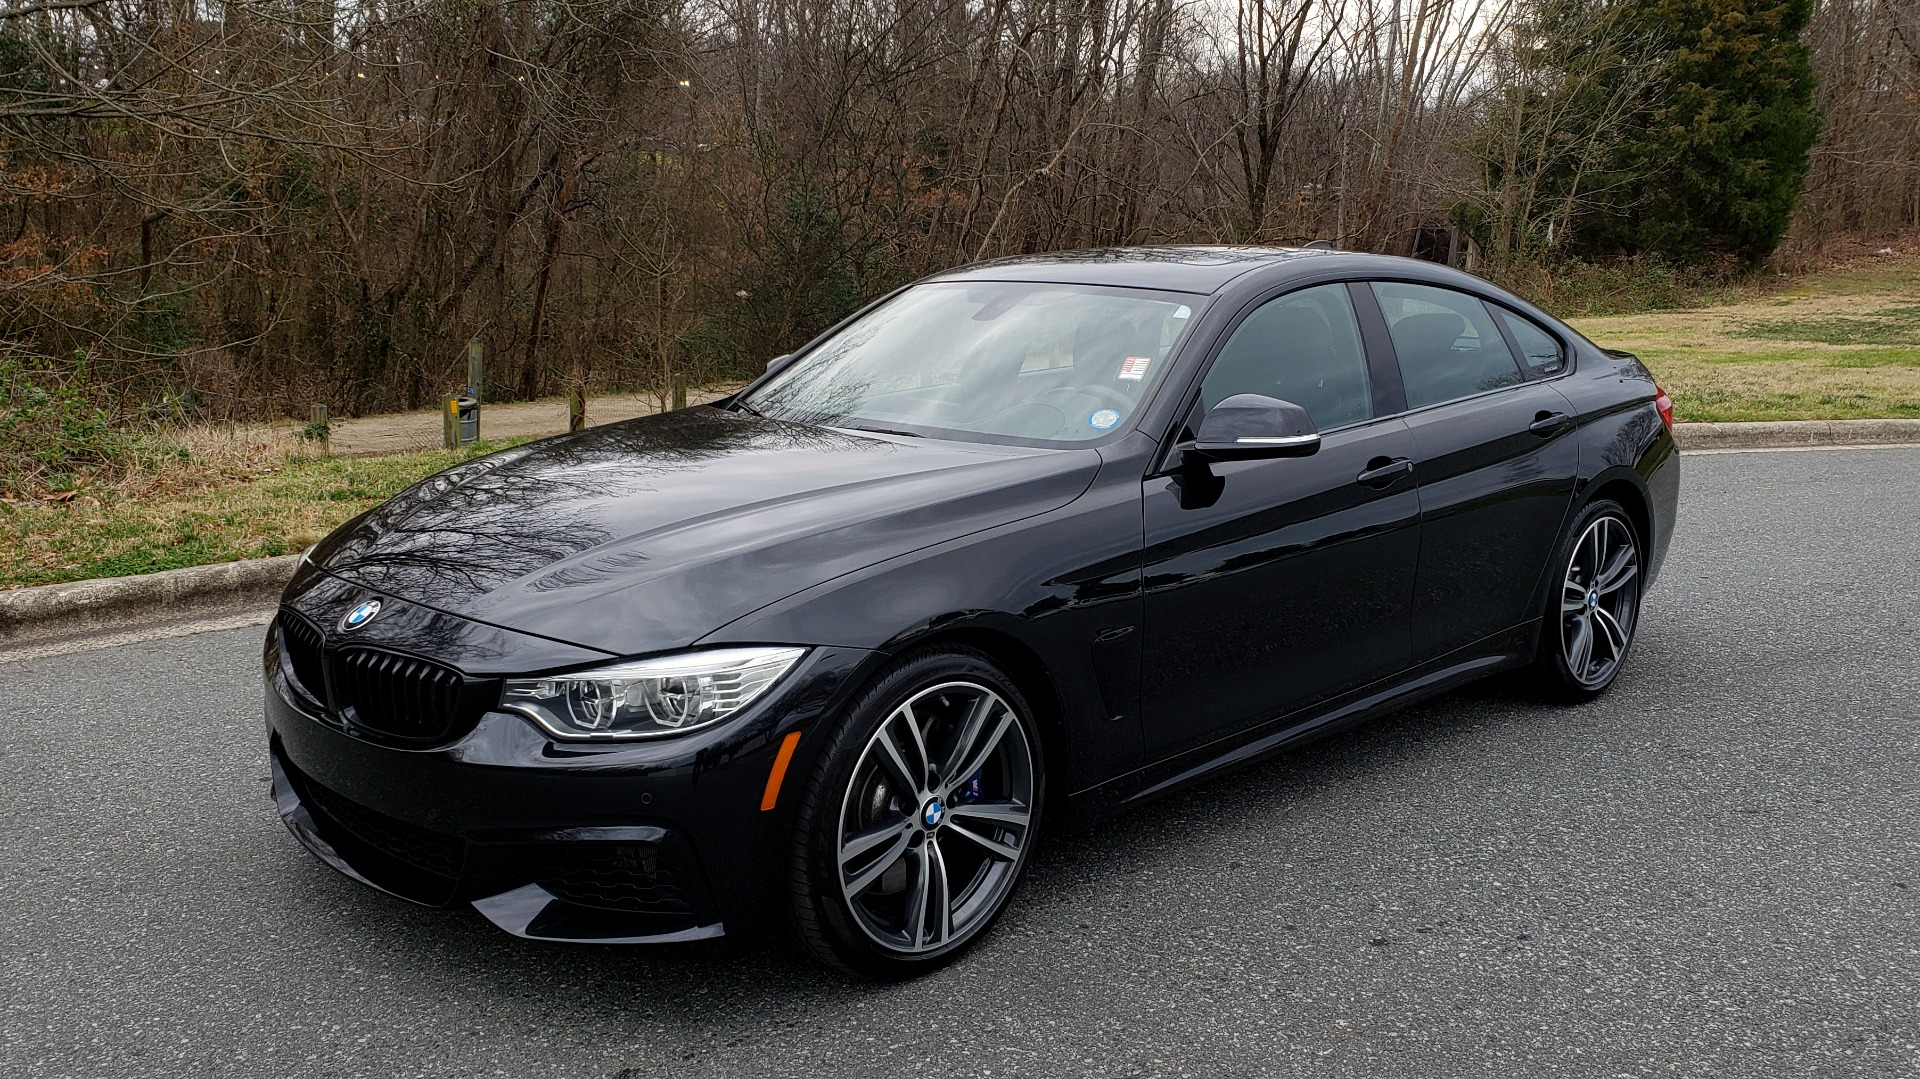 Used 2017 BMW 4 SERIES 440i M-SPORT / TECH / TRACK HANDLING / APPLE CAR PLAY for sale Sold at Formula Imports in Charlotte NC 28227 1